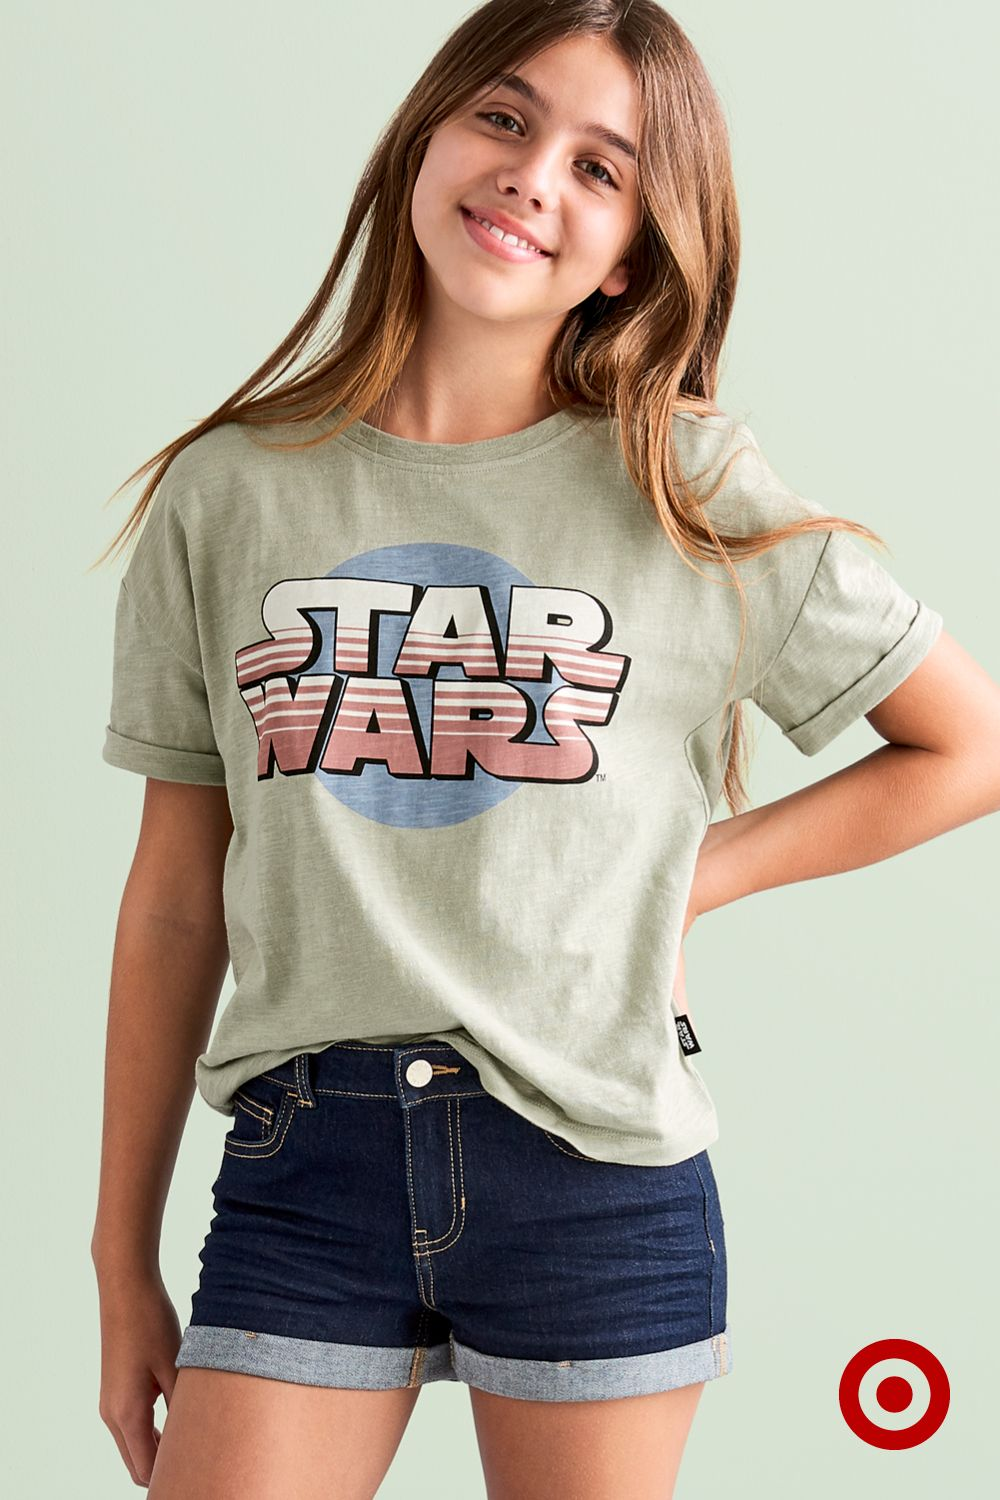 Christmas Star Star wars outfits, Star wars womens